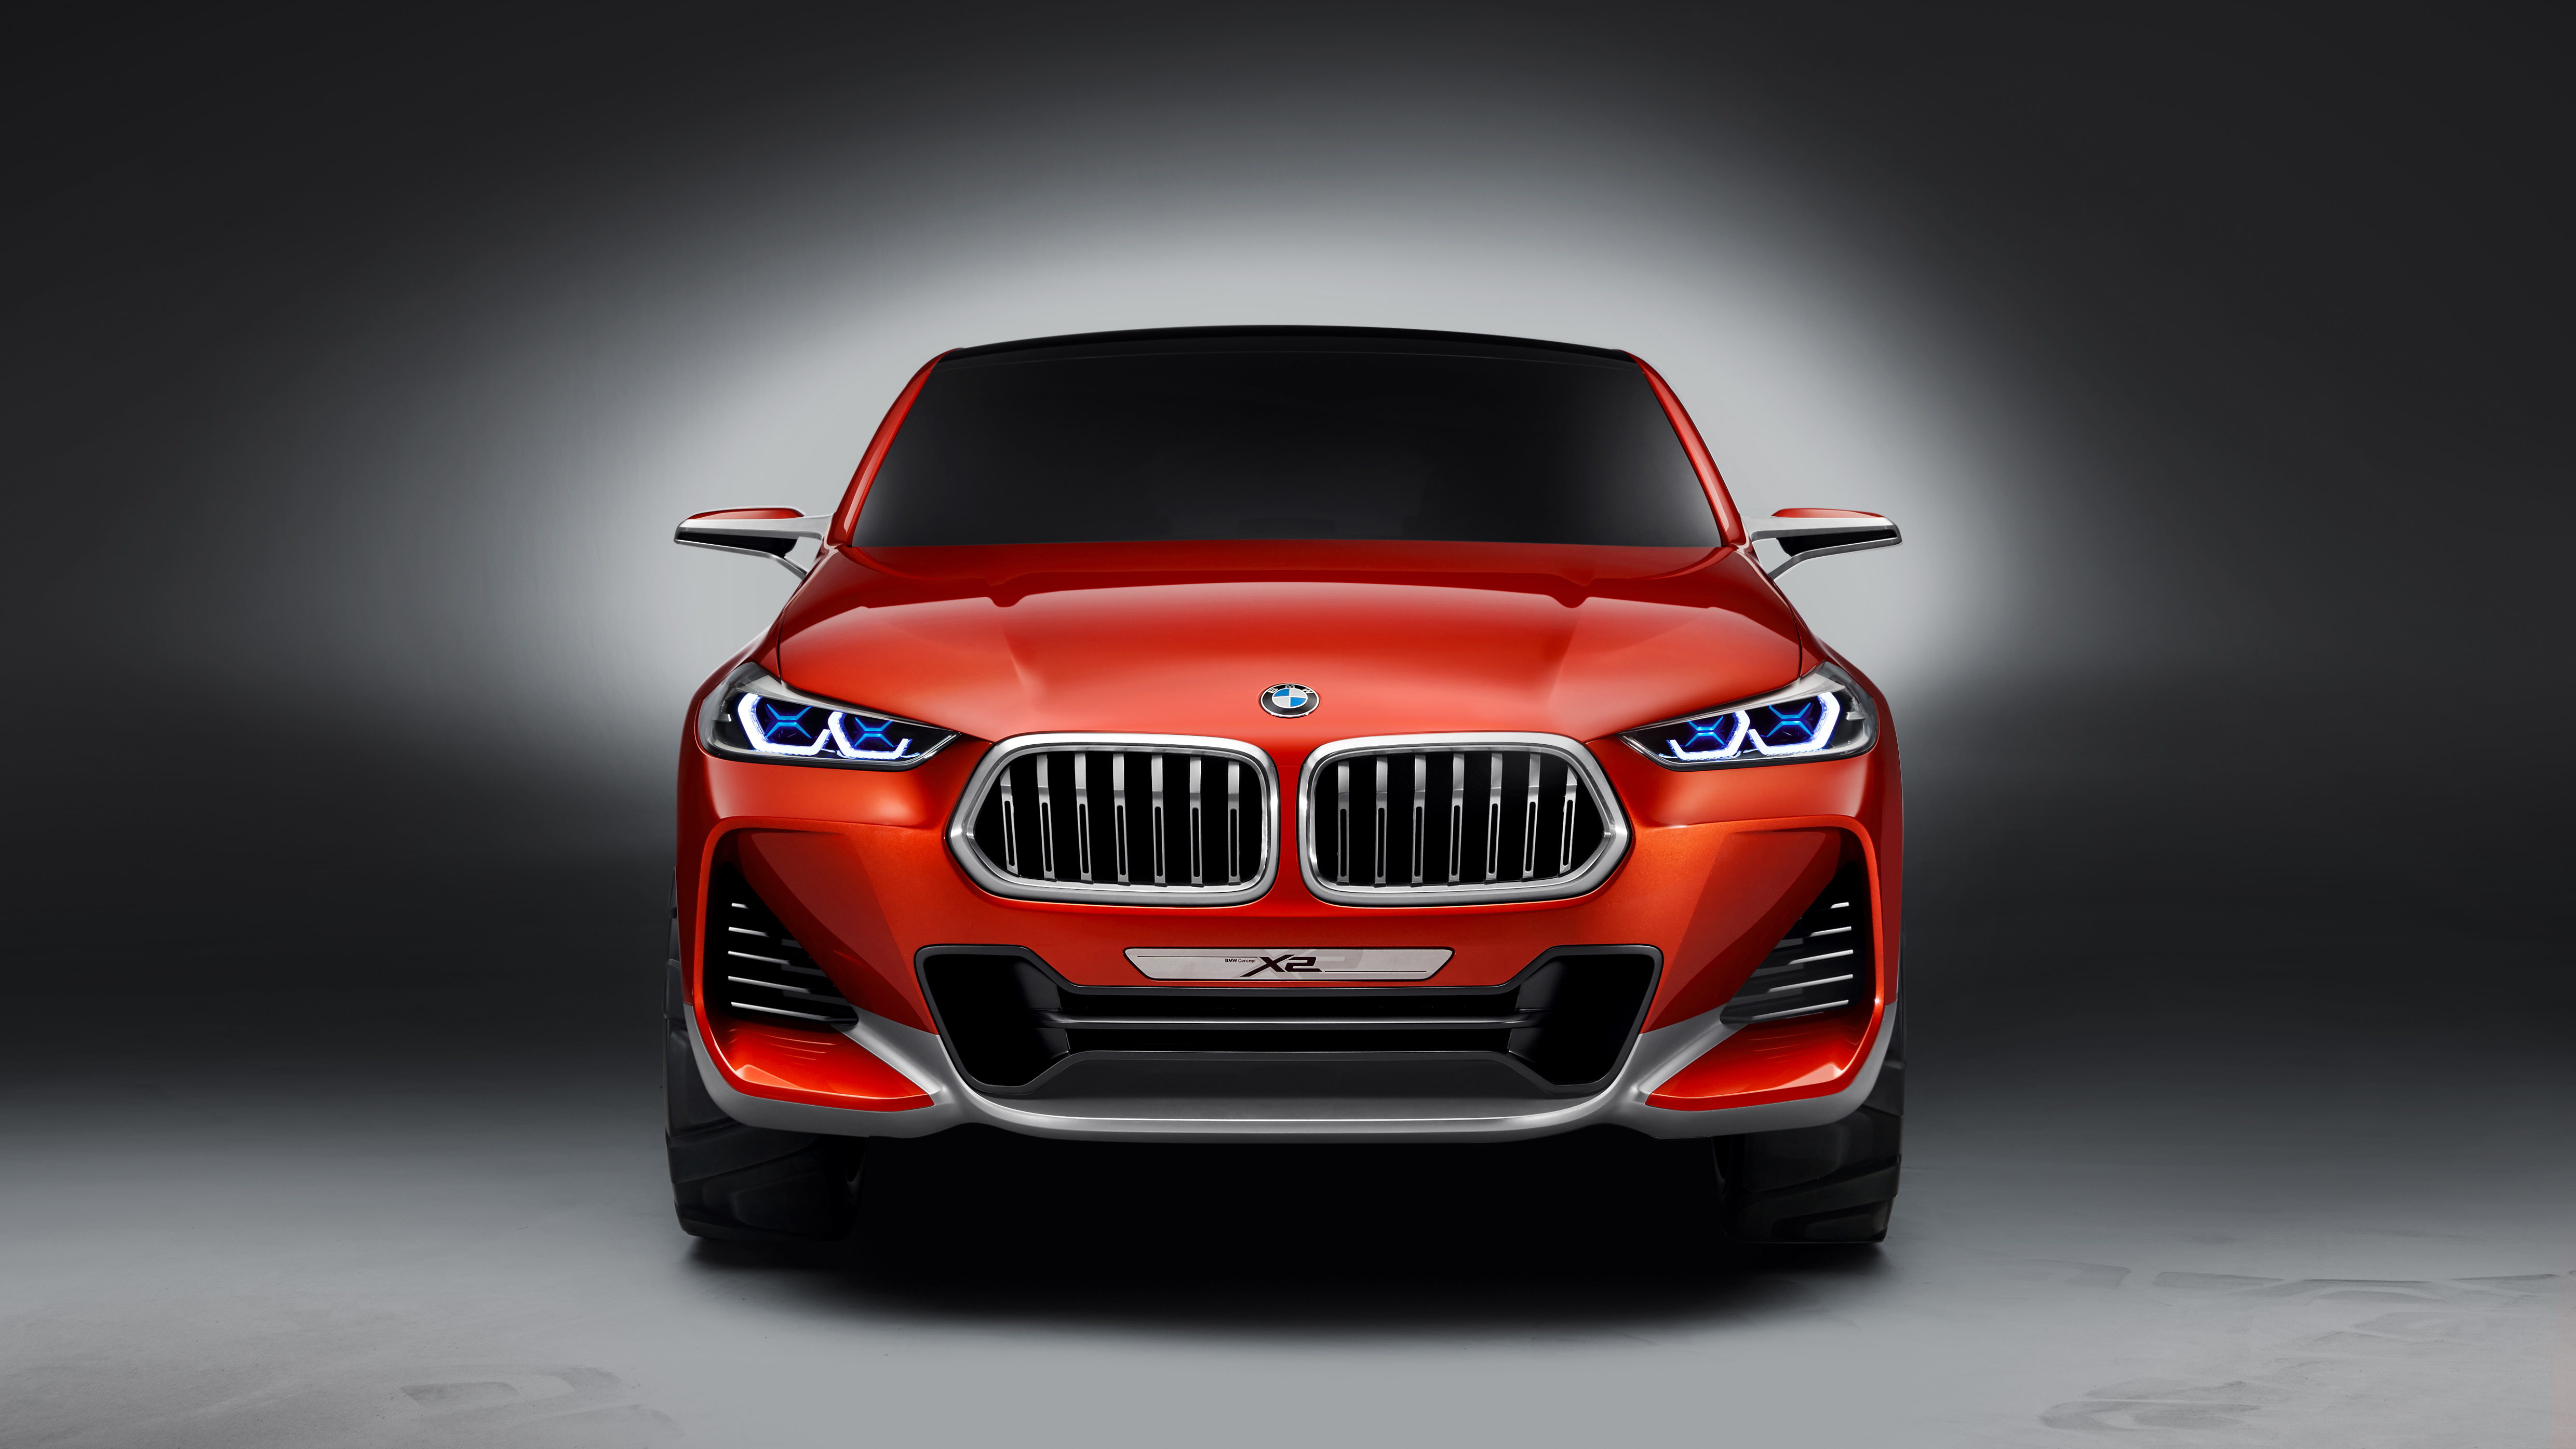 2018 Bmw X2 Concept Car Hd Cars 4k Wallpapers Images Backgrounds